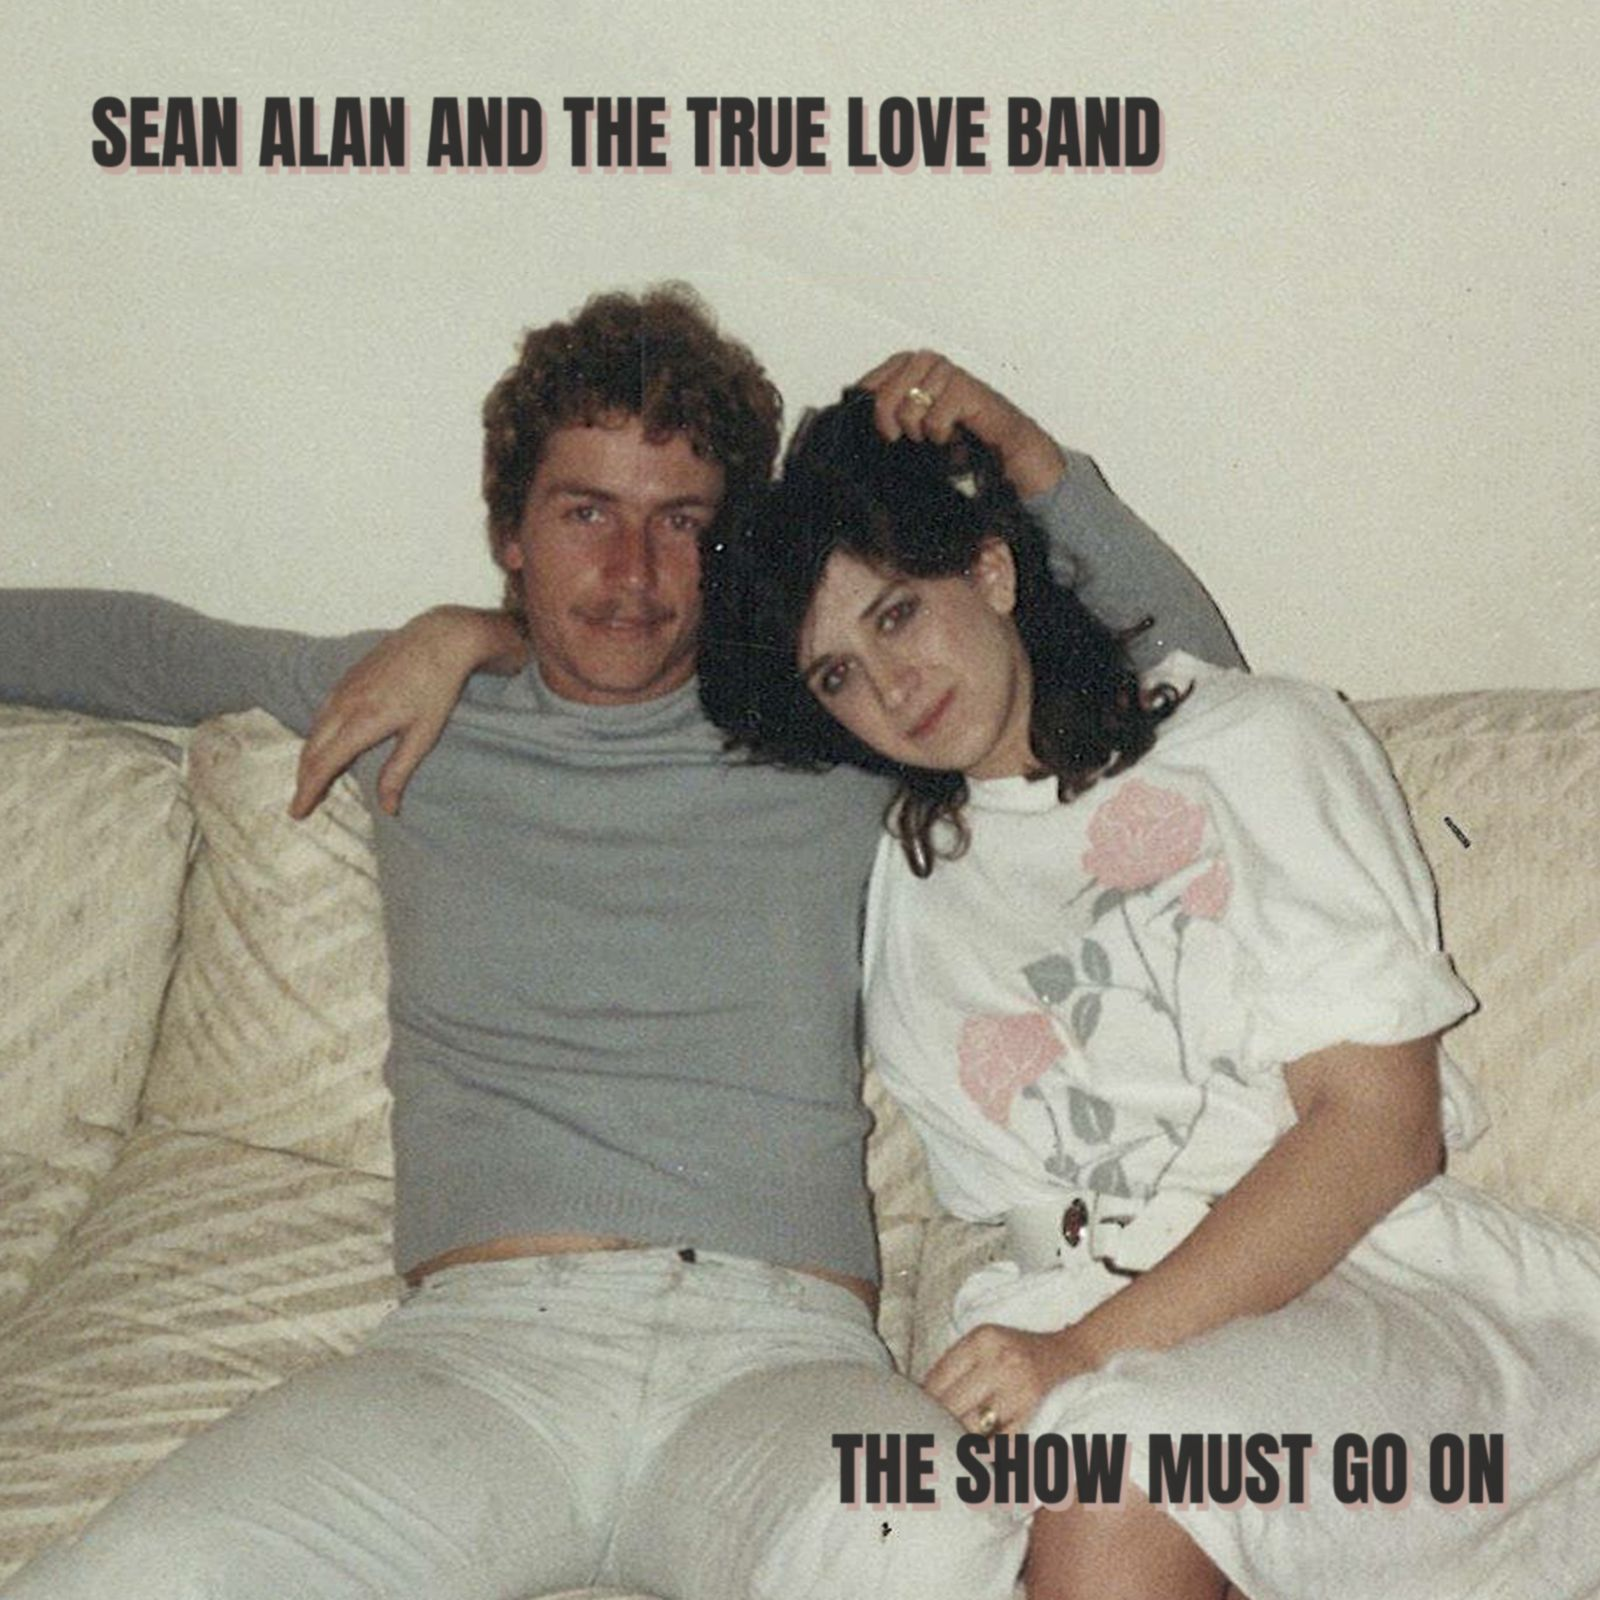 Sean Alan and The True Love Band